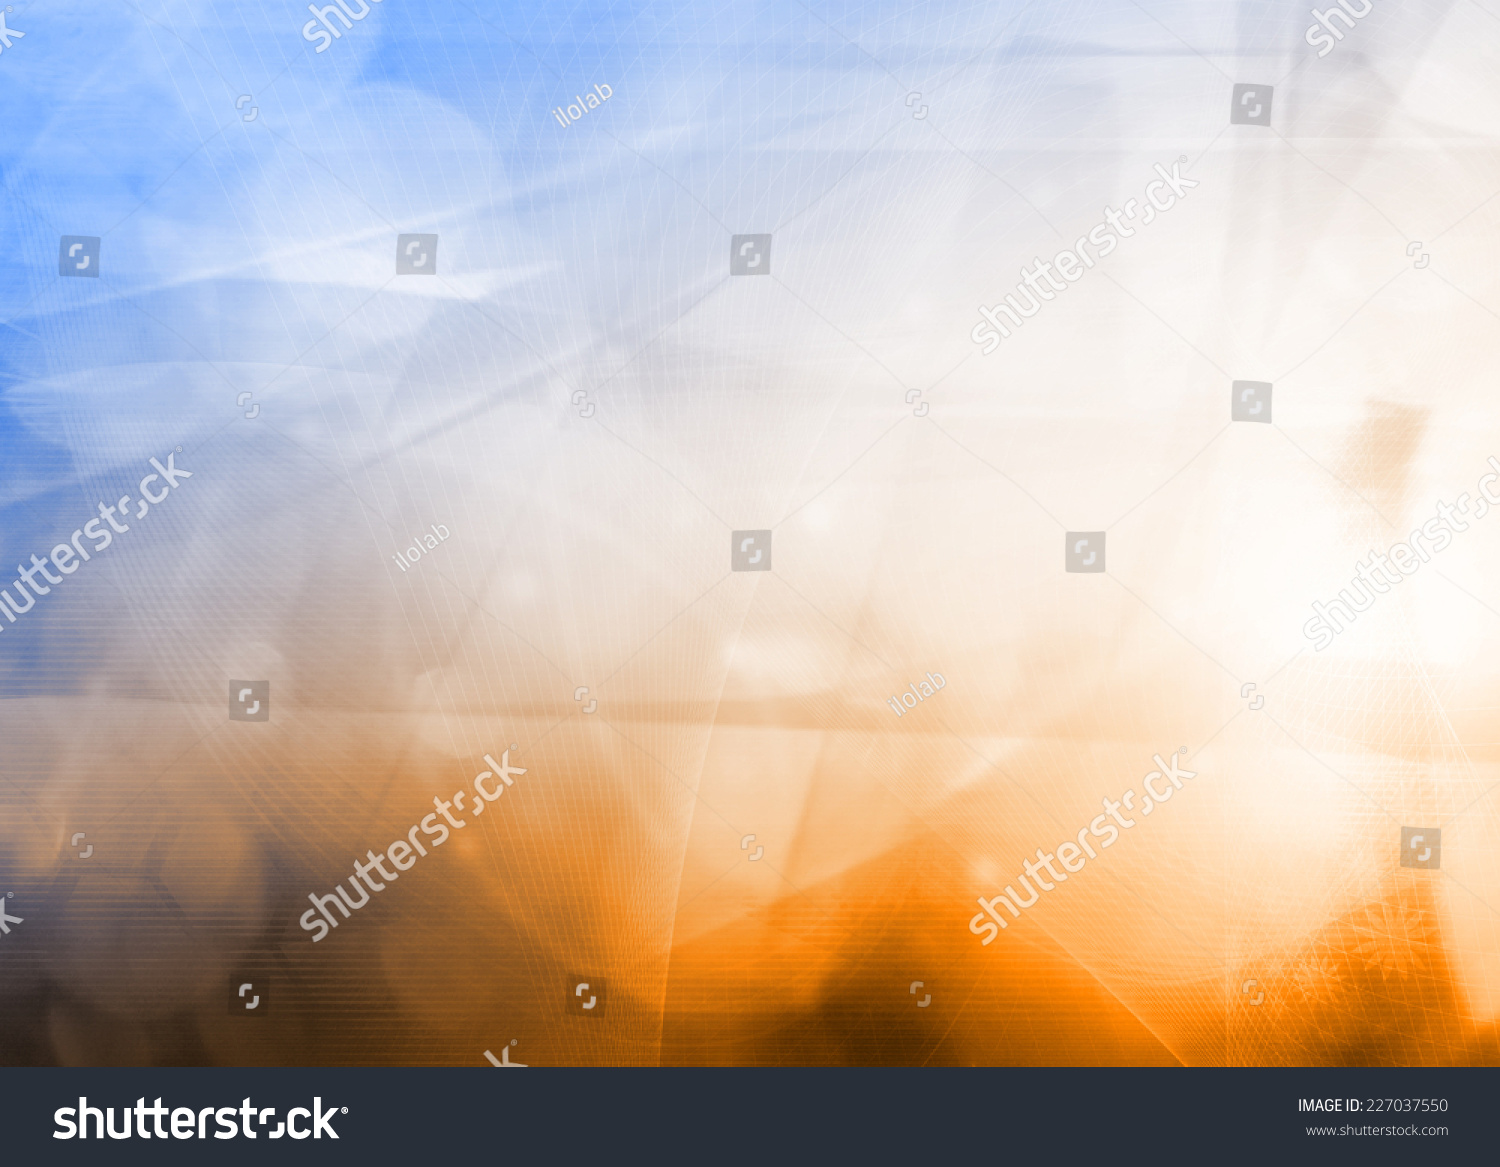 Stream Of Light Wallpaper Streams Light Abstract Cool Waves Background Stock Photo